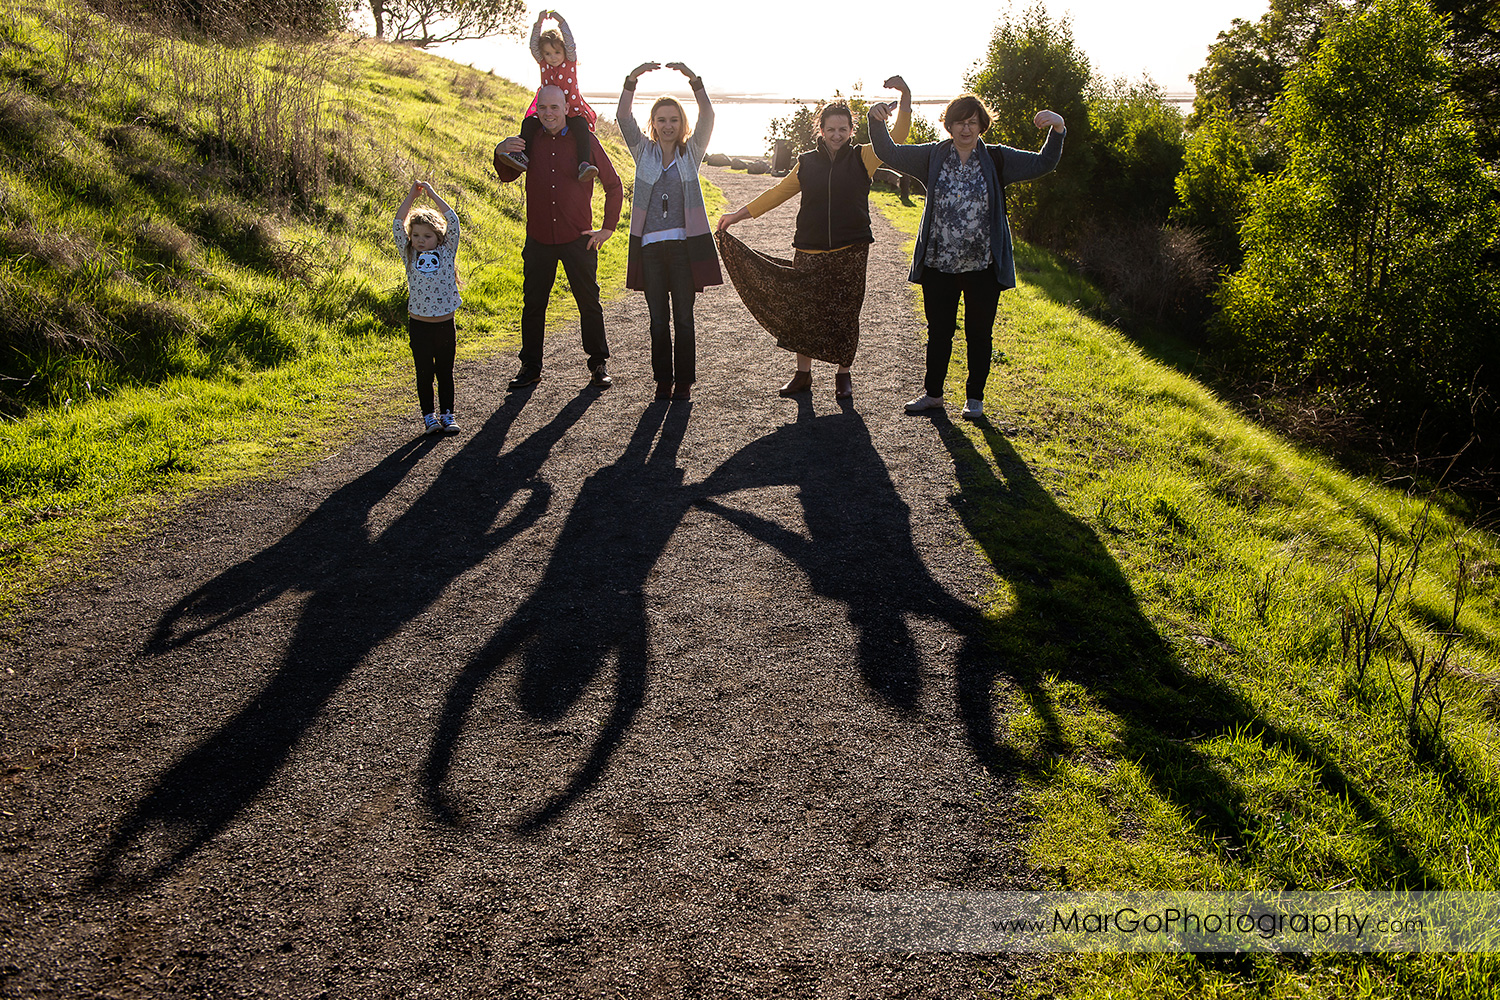 3 generation family during shadows competition at Don Edwards Refuge in Fremont